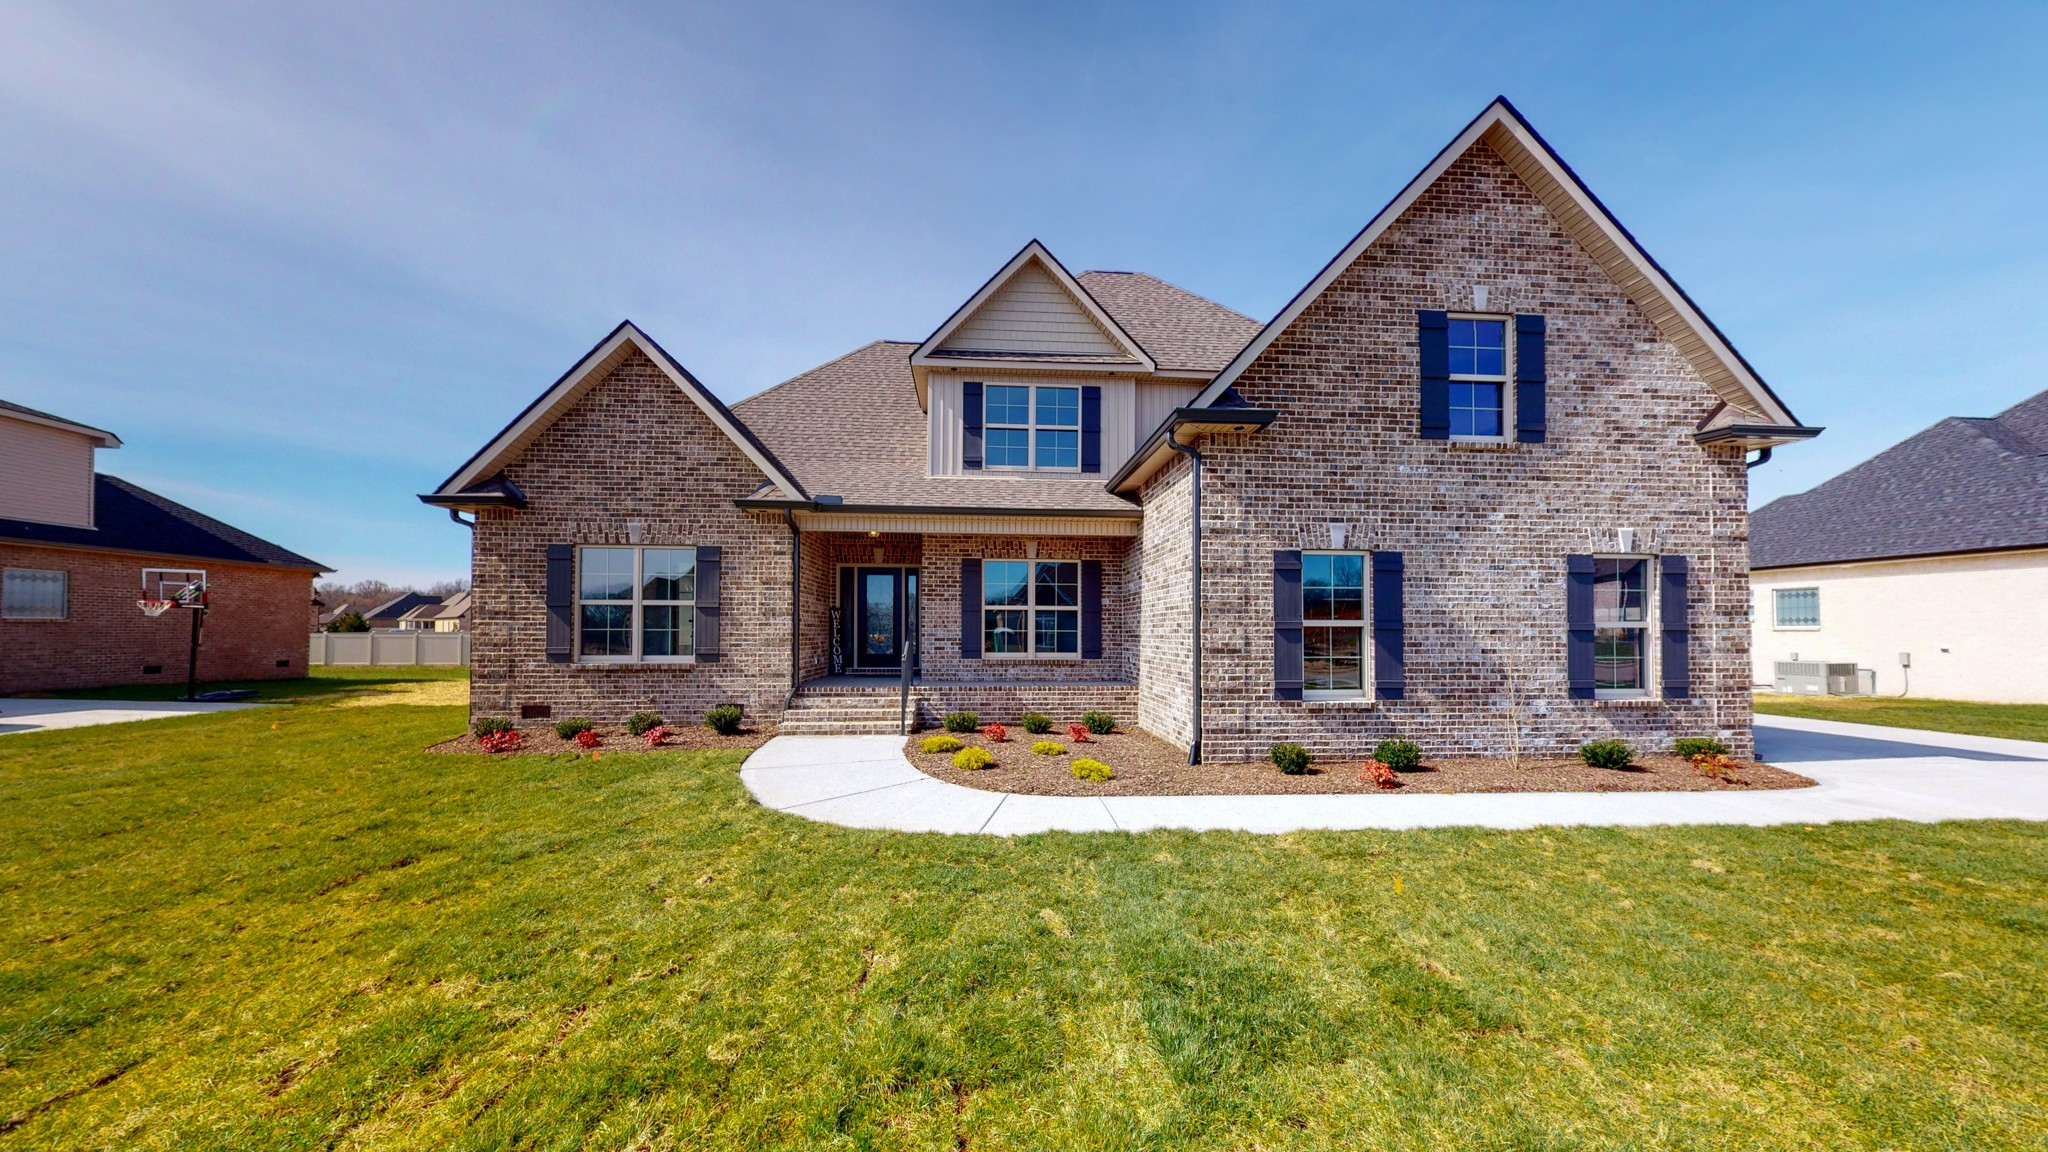 1505 Addi Jo Court Property Photo - Christiana, TN real estate listing